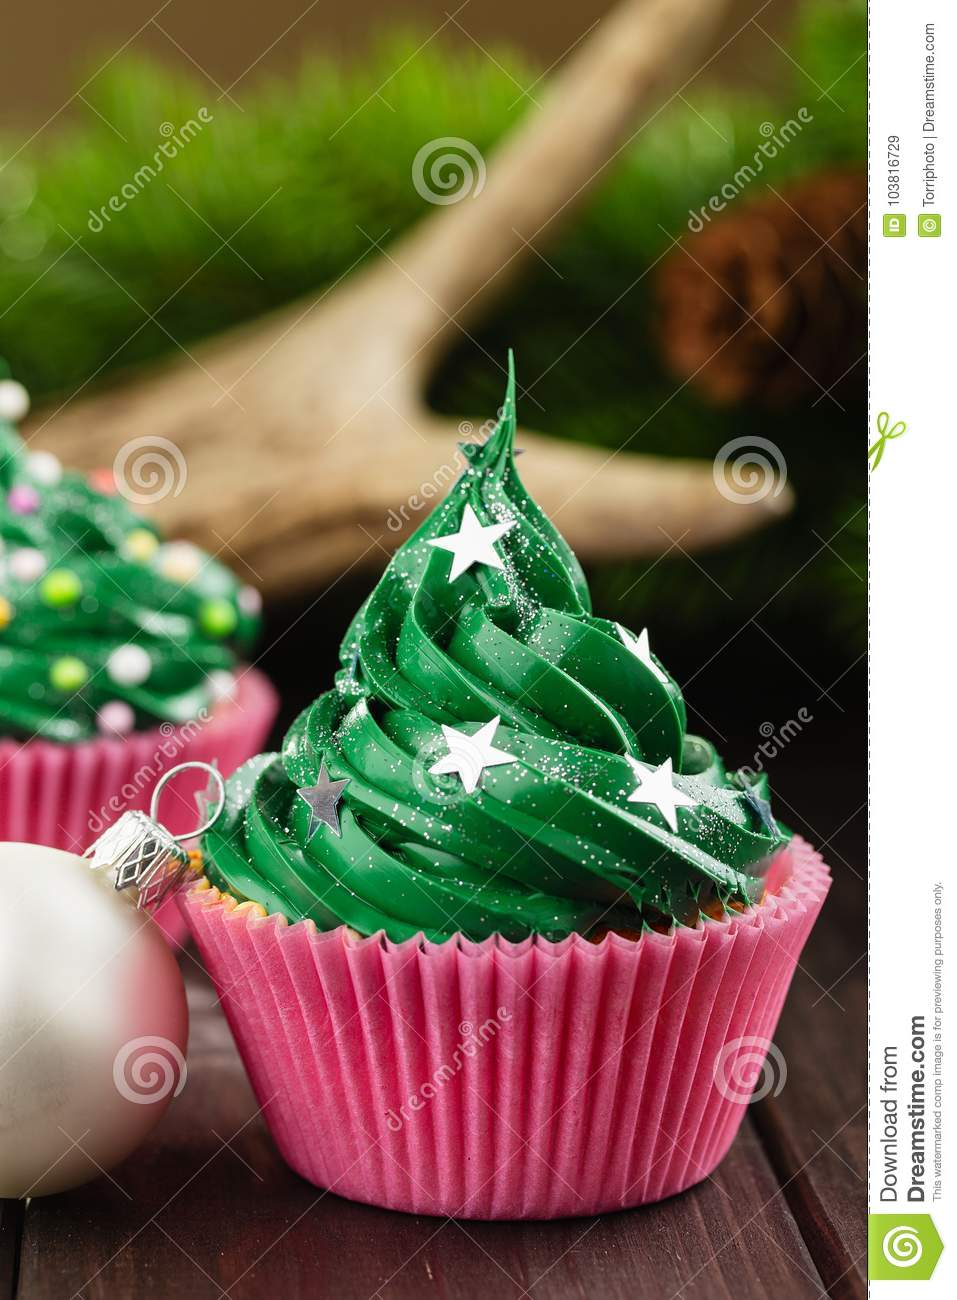 Green christmas cupcake with festive decorations